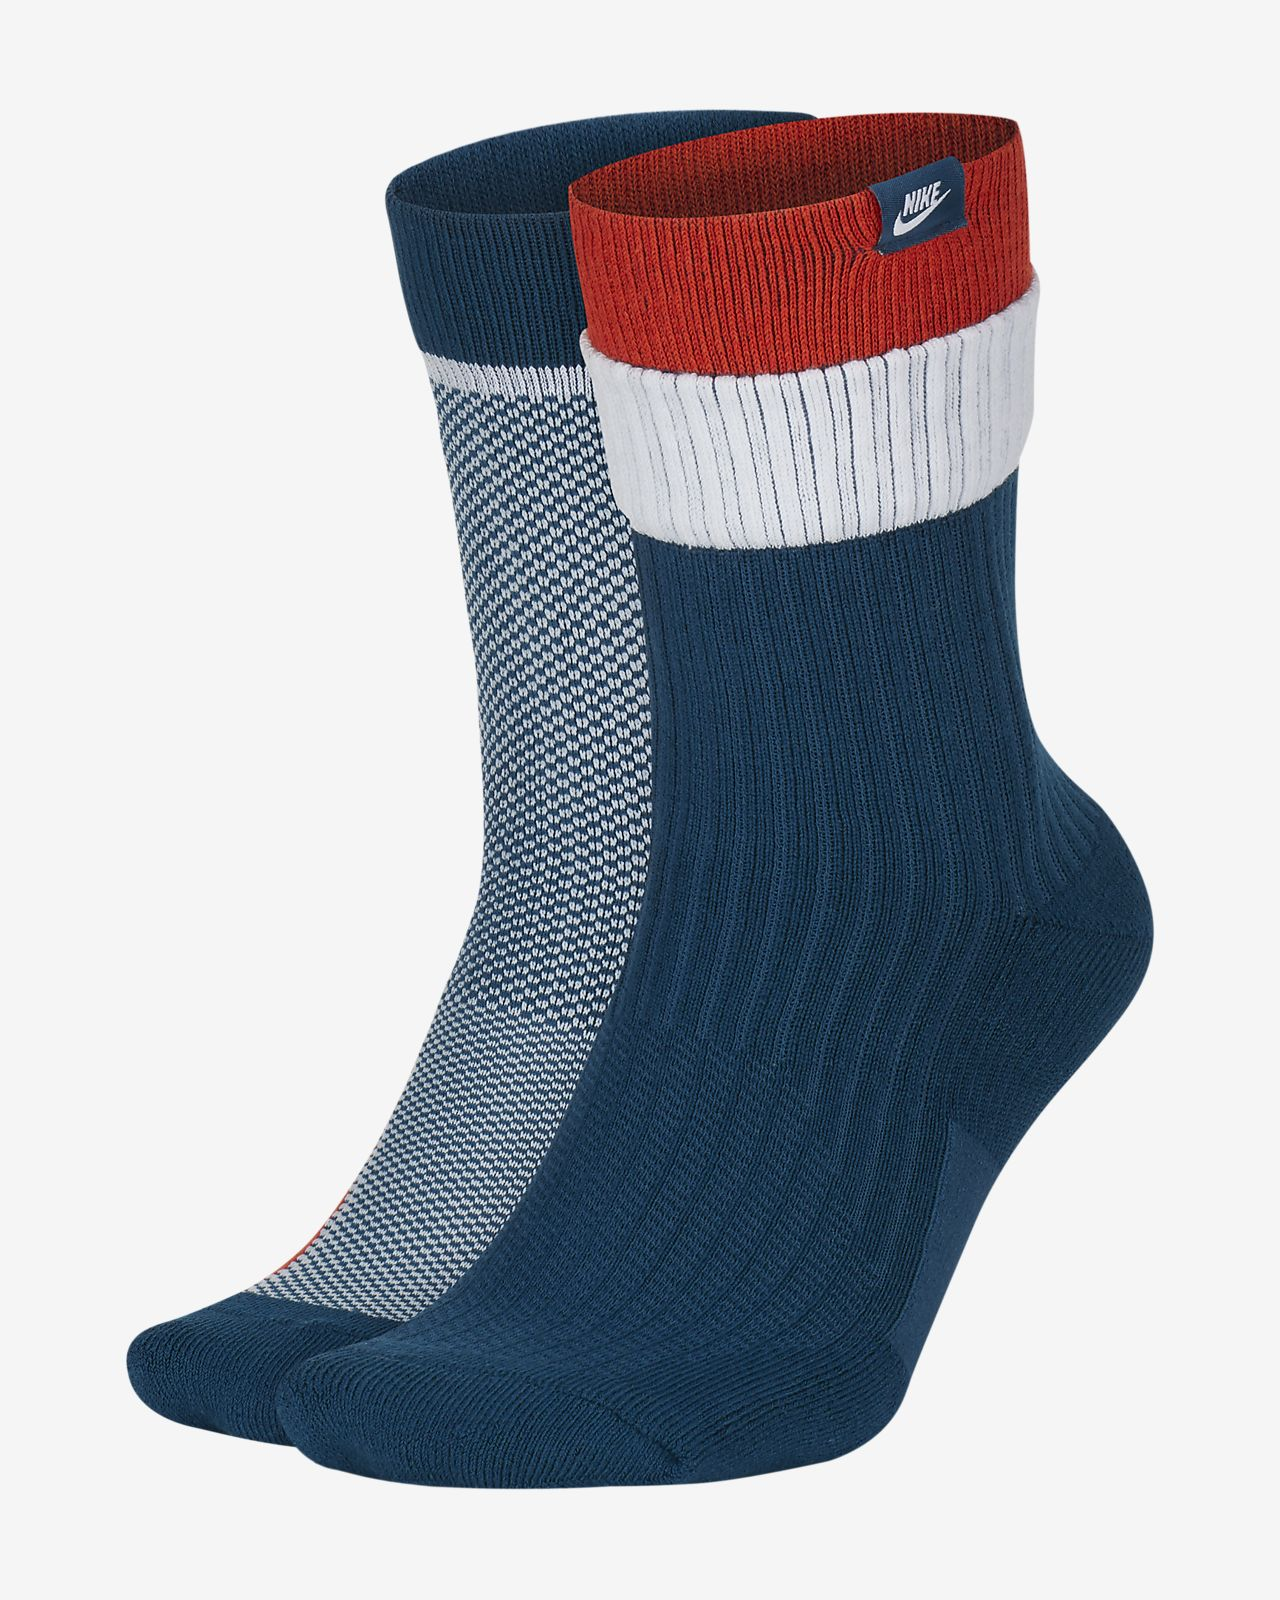 Nike SNEAKR Sox Multi-Height Socks (2 Pairs with gift box)